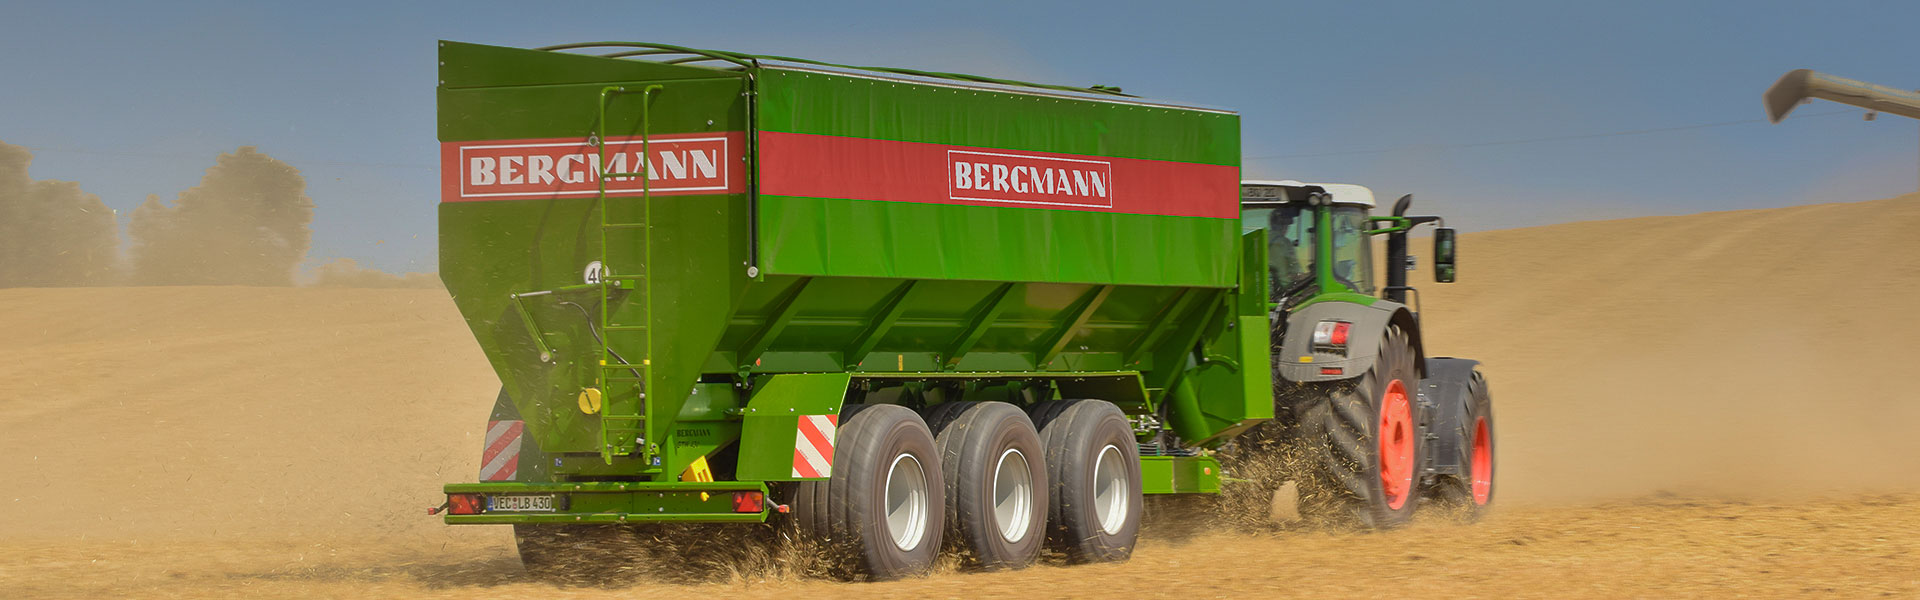 fendt and bergmann harvest action image